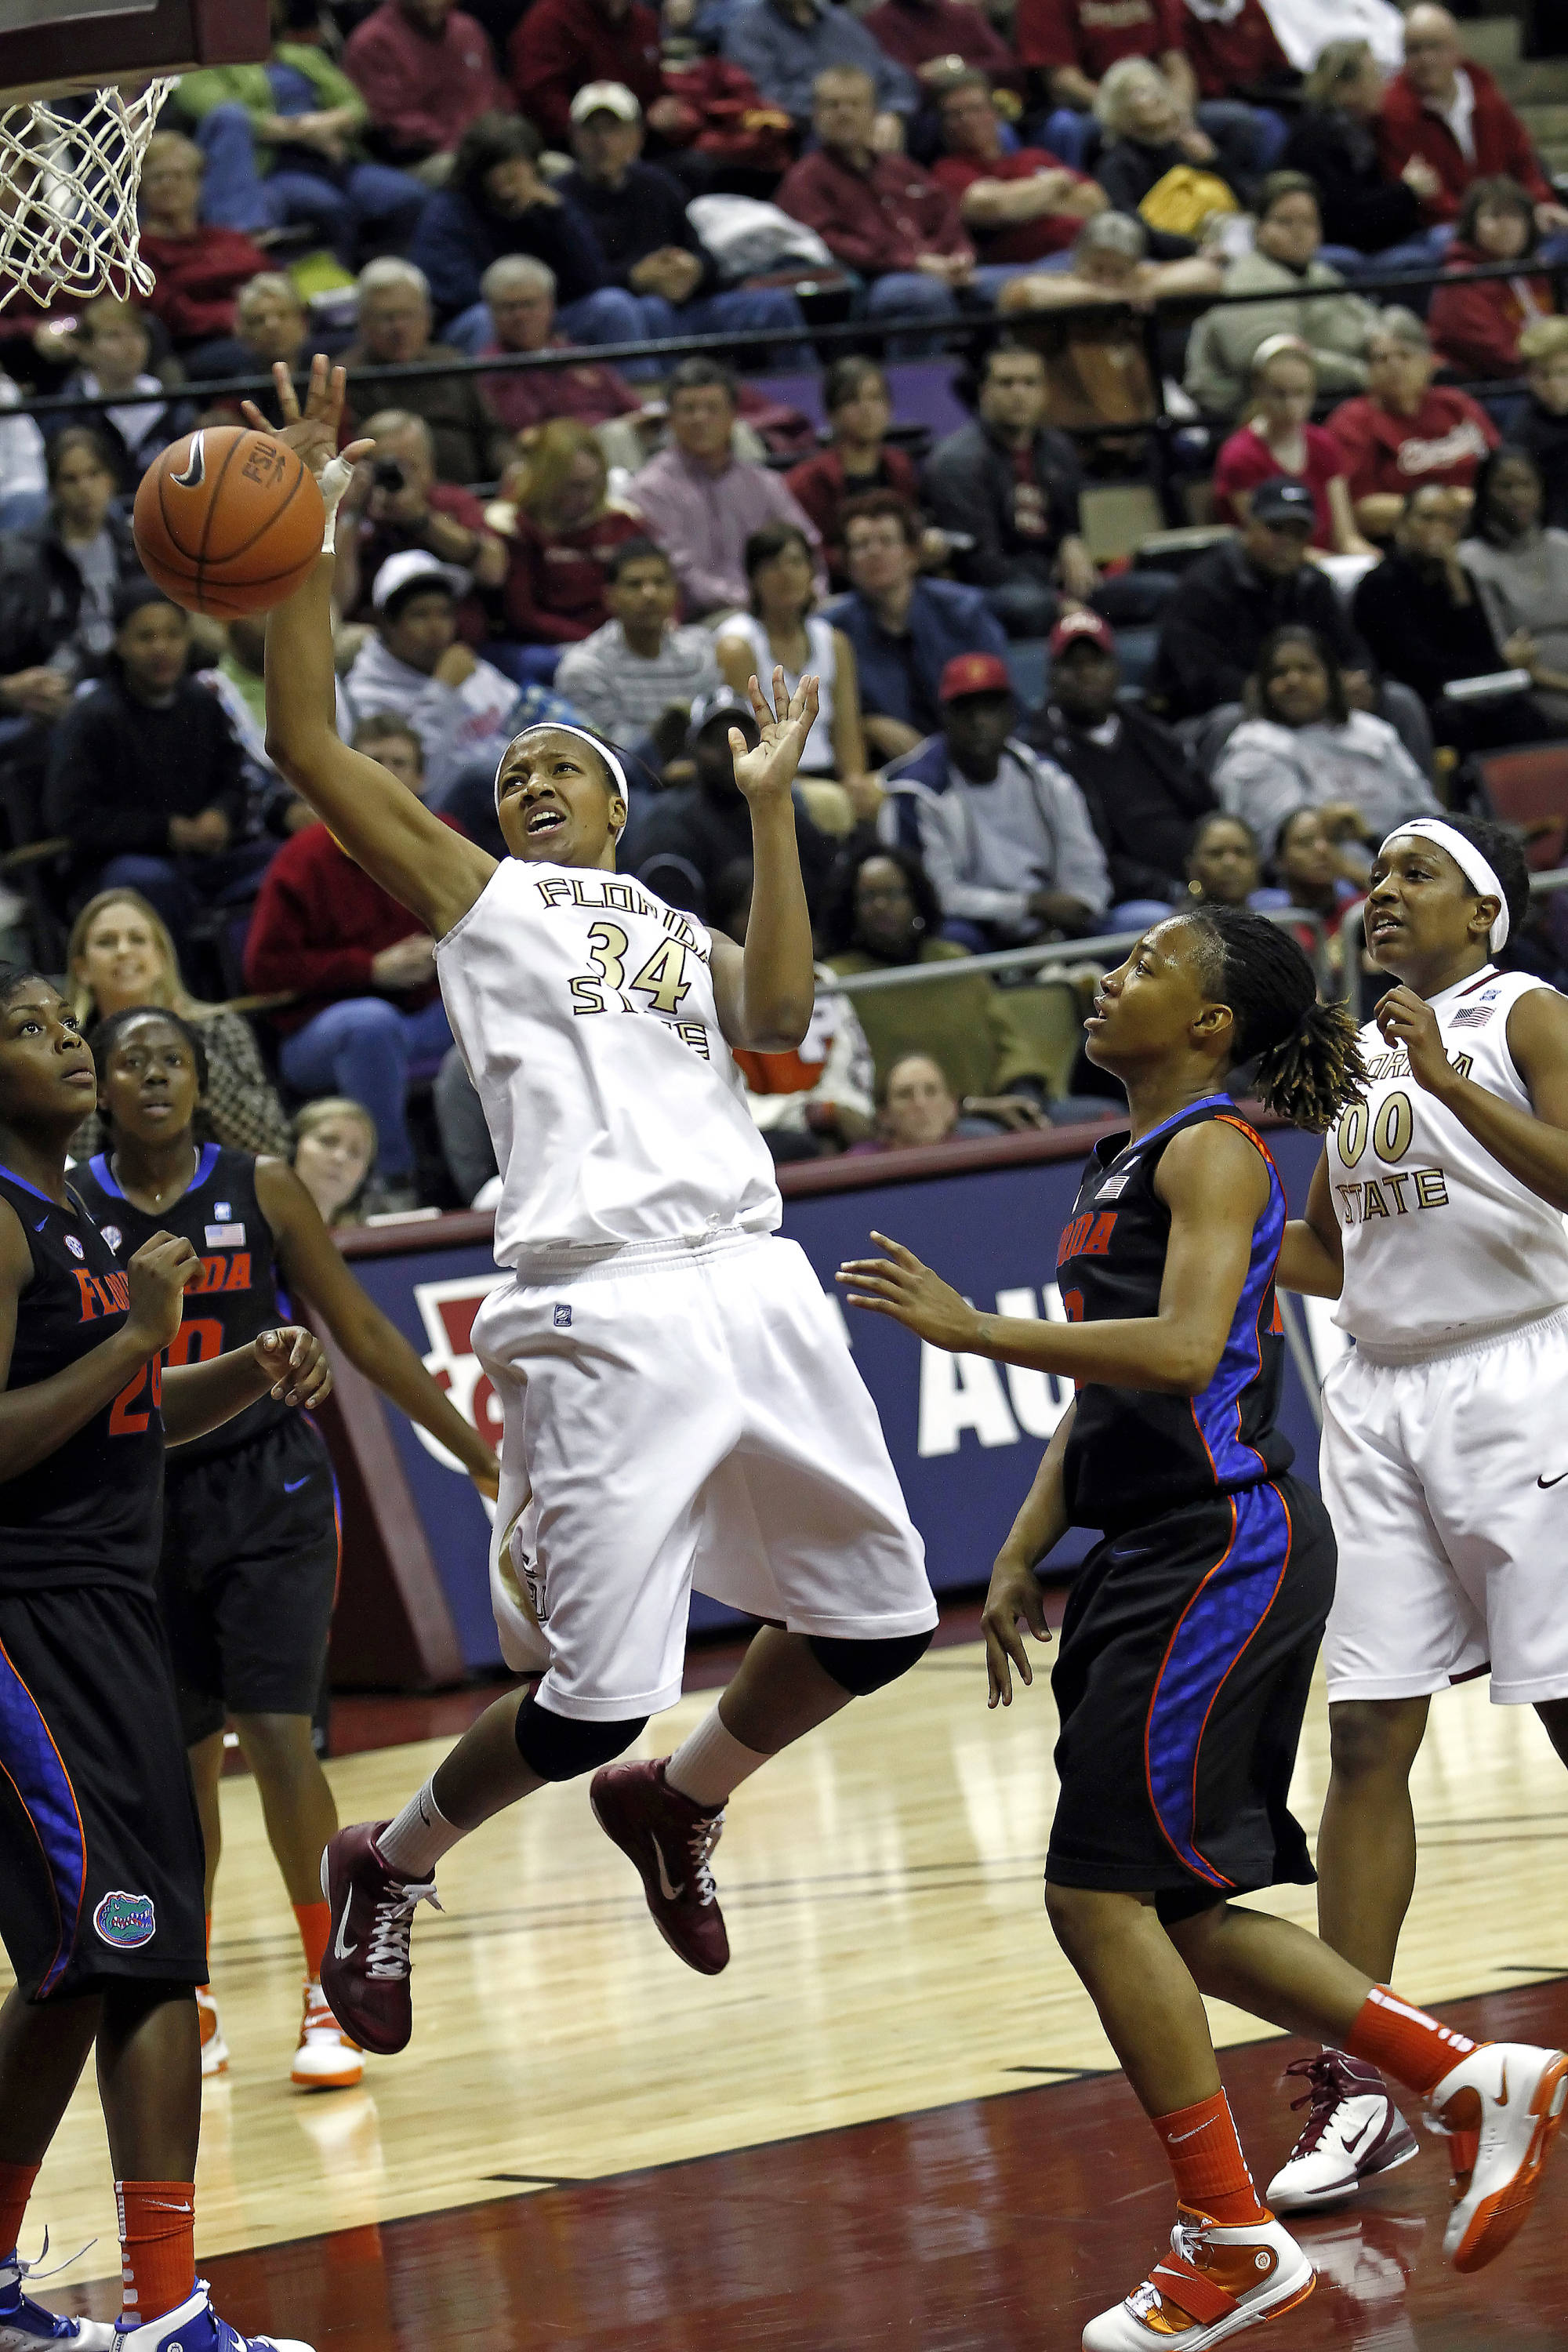 FSU vs Florida 12/28/10 - Chelsea Davis (34), Chasity Clayton (00)#$%^Photo by Steve Musco